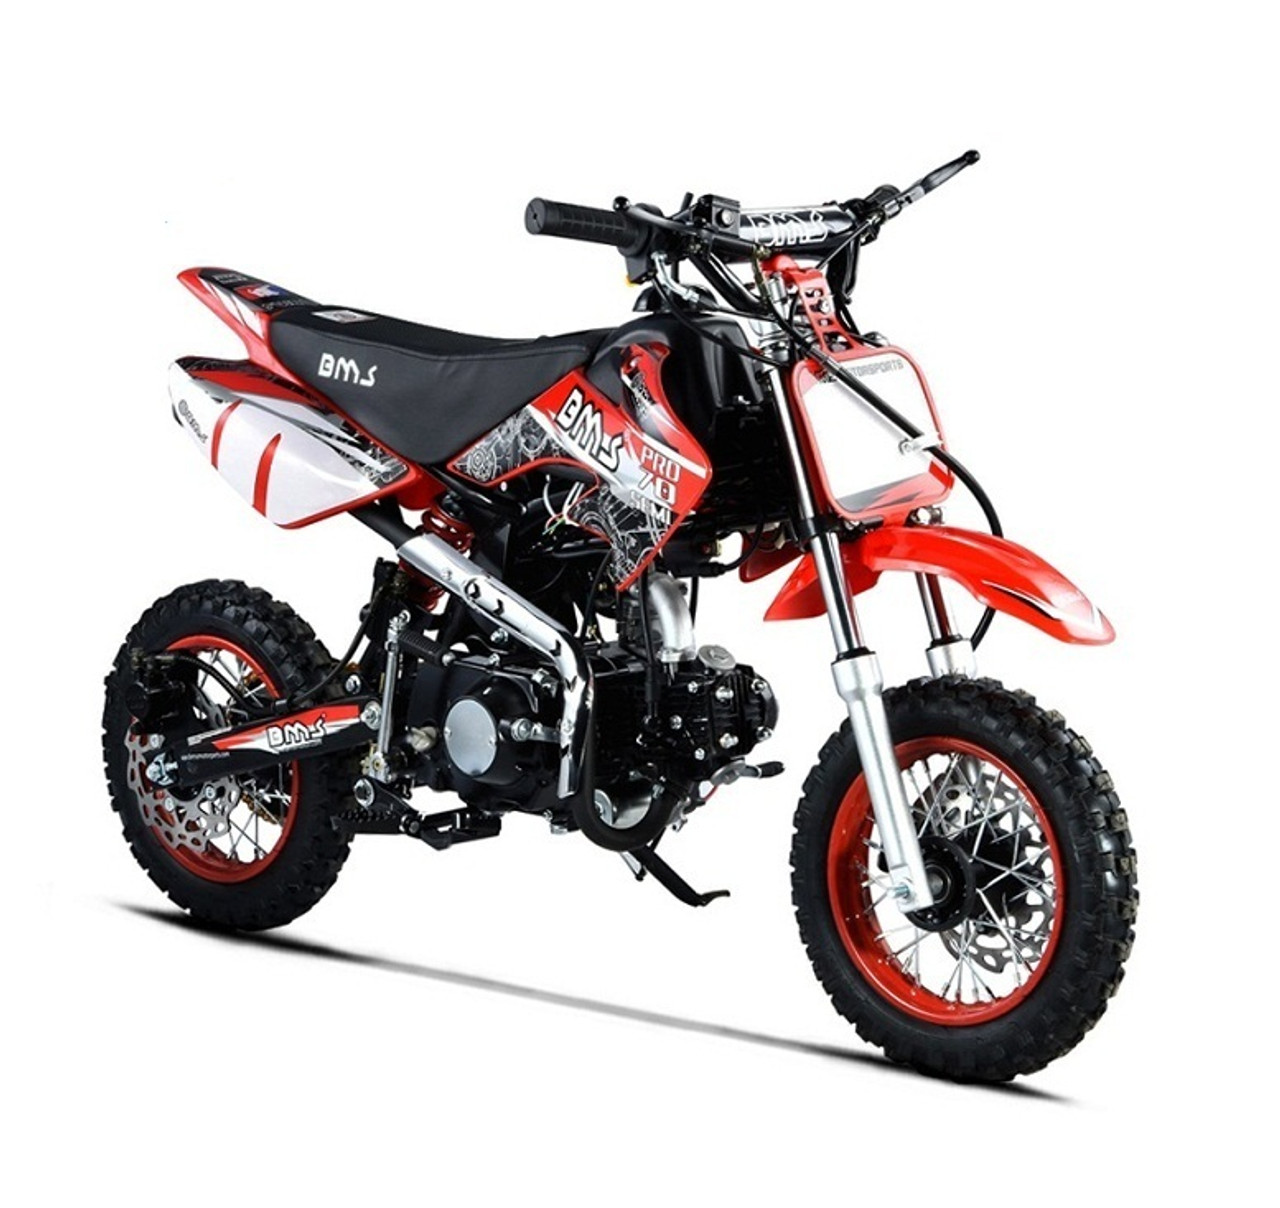 BMS PRO 70 SEMI, 70CC SINGLE CYLINDER 4-STROKE, AIR COOLED